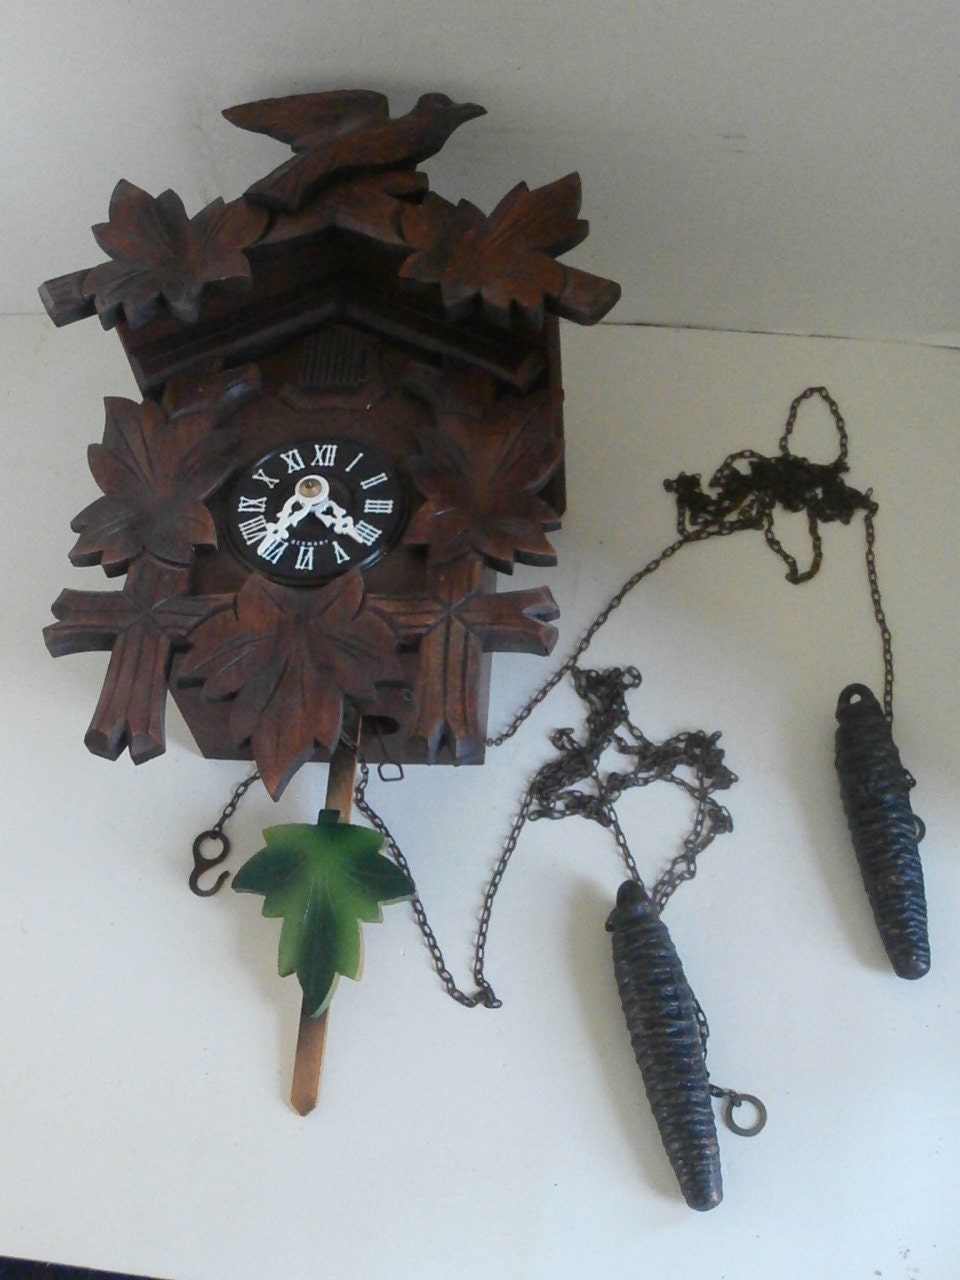 cuckoo clock instructions with West German Cuckoo Clock on 1526 furthermore Black White Alarm Clock likewise Stock Photo Triberg Im Schwarzwald Watch Shop On The Main Road With The Worlds 126191117 furthermore Cuckoo Clock 8 Day Movement Chalet Style 34cm By Cuckoo Palace  1033 further Cuckoo Clock Quartz Movement Chalet Style 24cm By Trenkle Uhren  896.